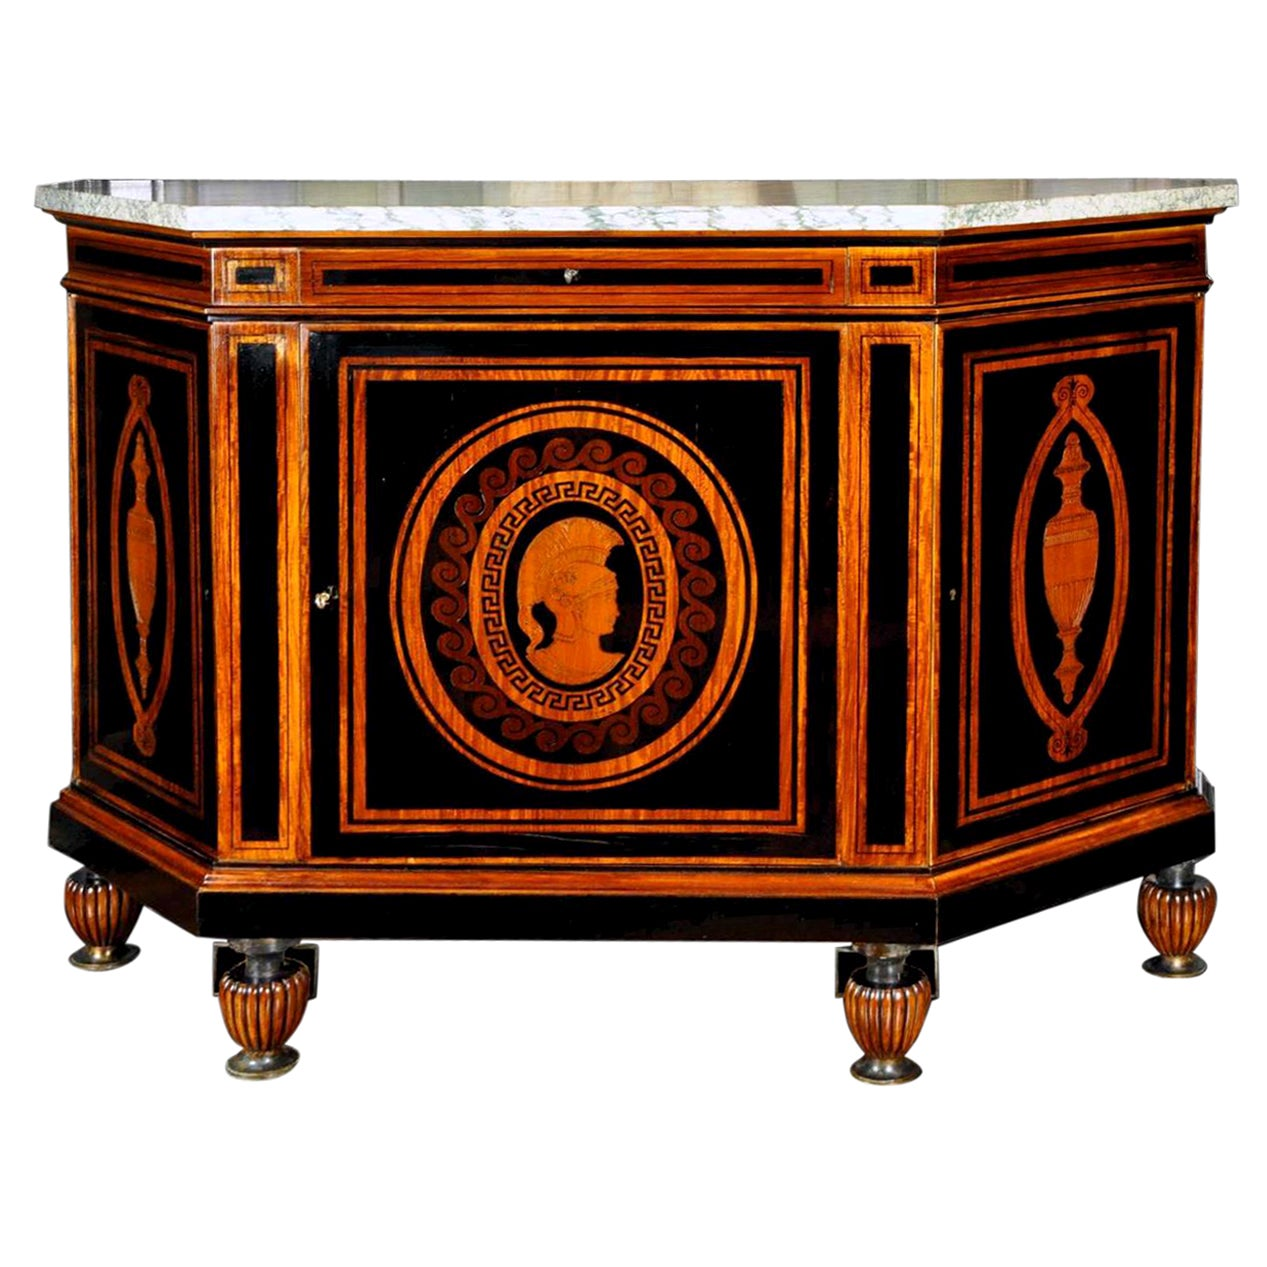 Curious French Sideboard Signed E. Duru